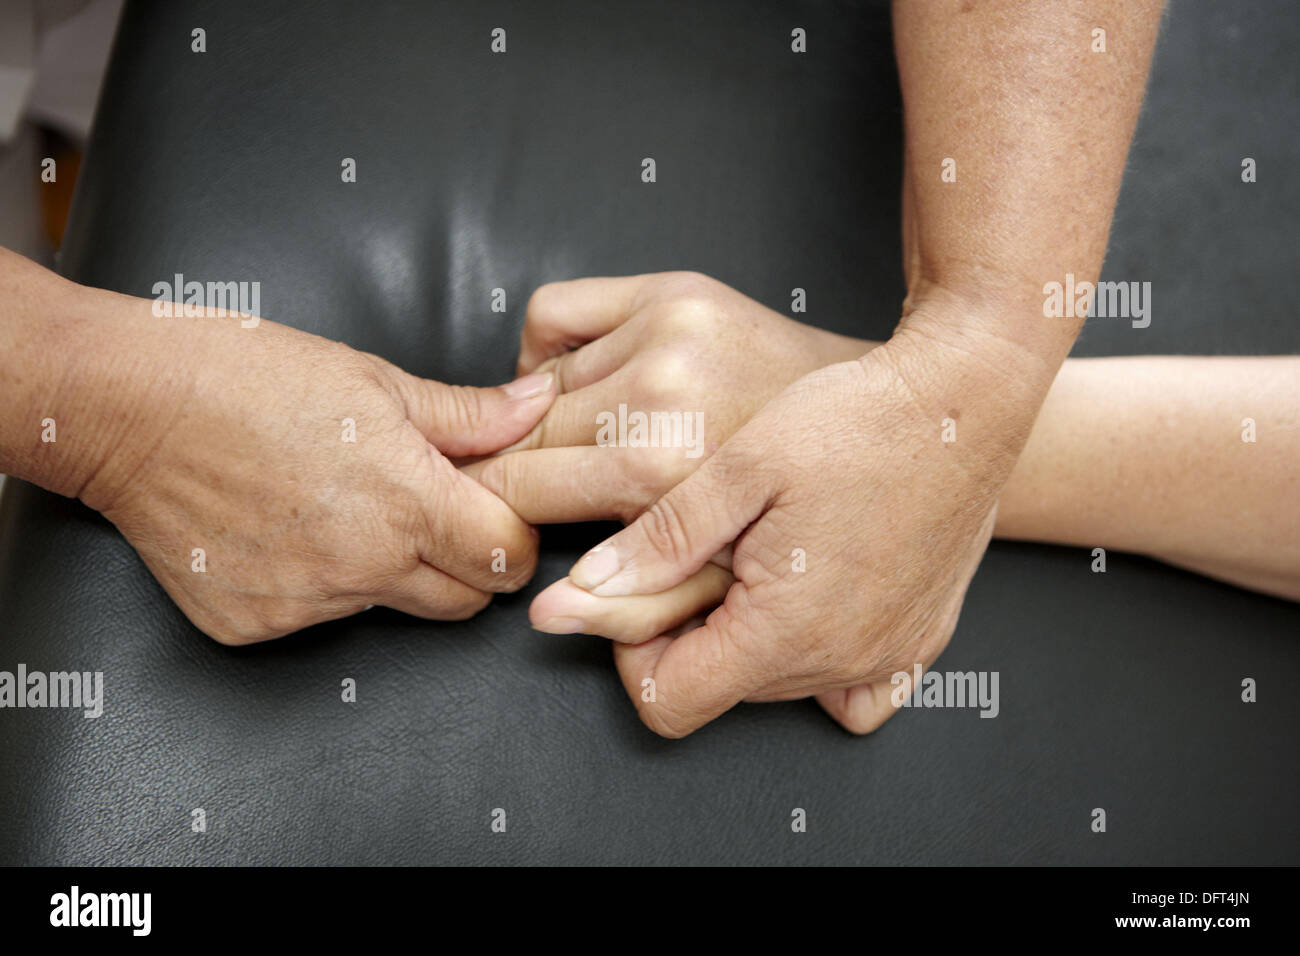 Occupational therapy, physiotherapy, hands: relaxing exercise, hemiplegia, stroke. Hospital Universitario de Gran Canaria - Stock Image